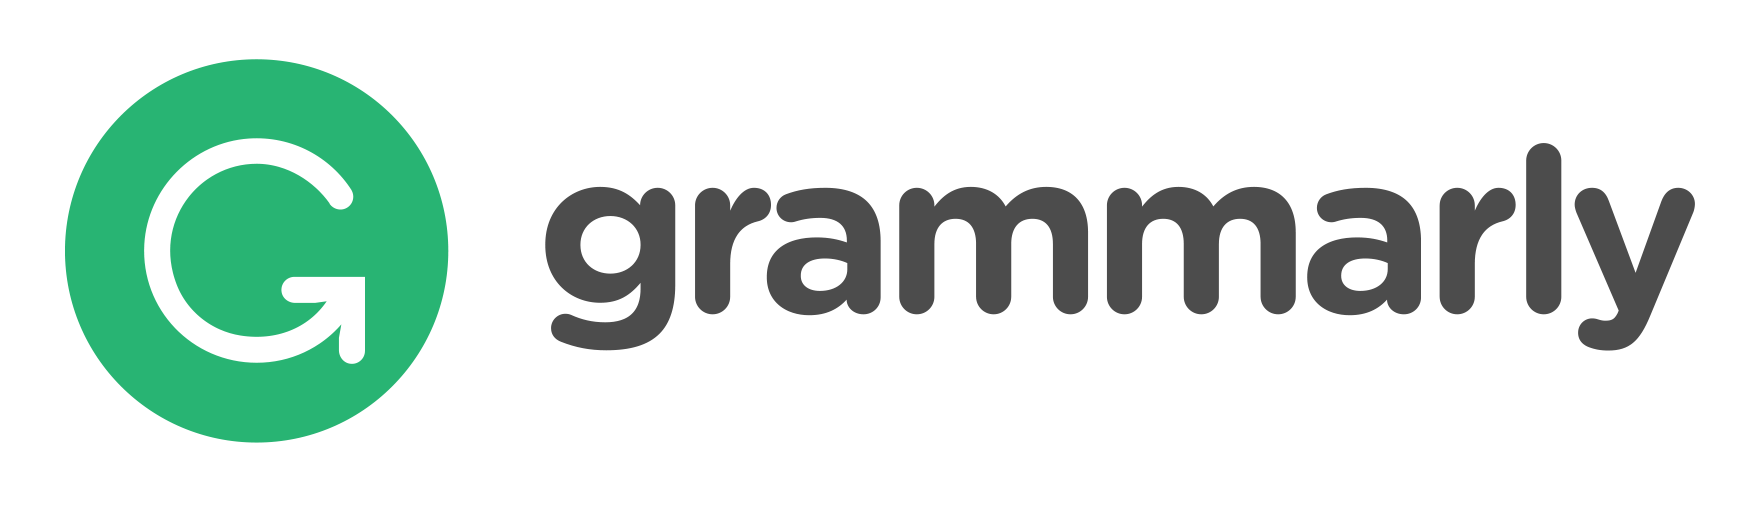 Upgrade To Premium With Grammarly